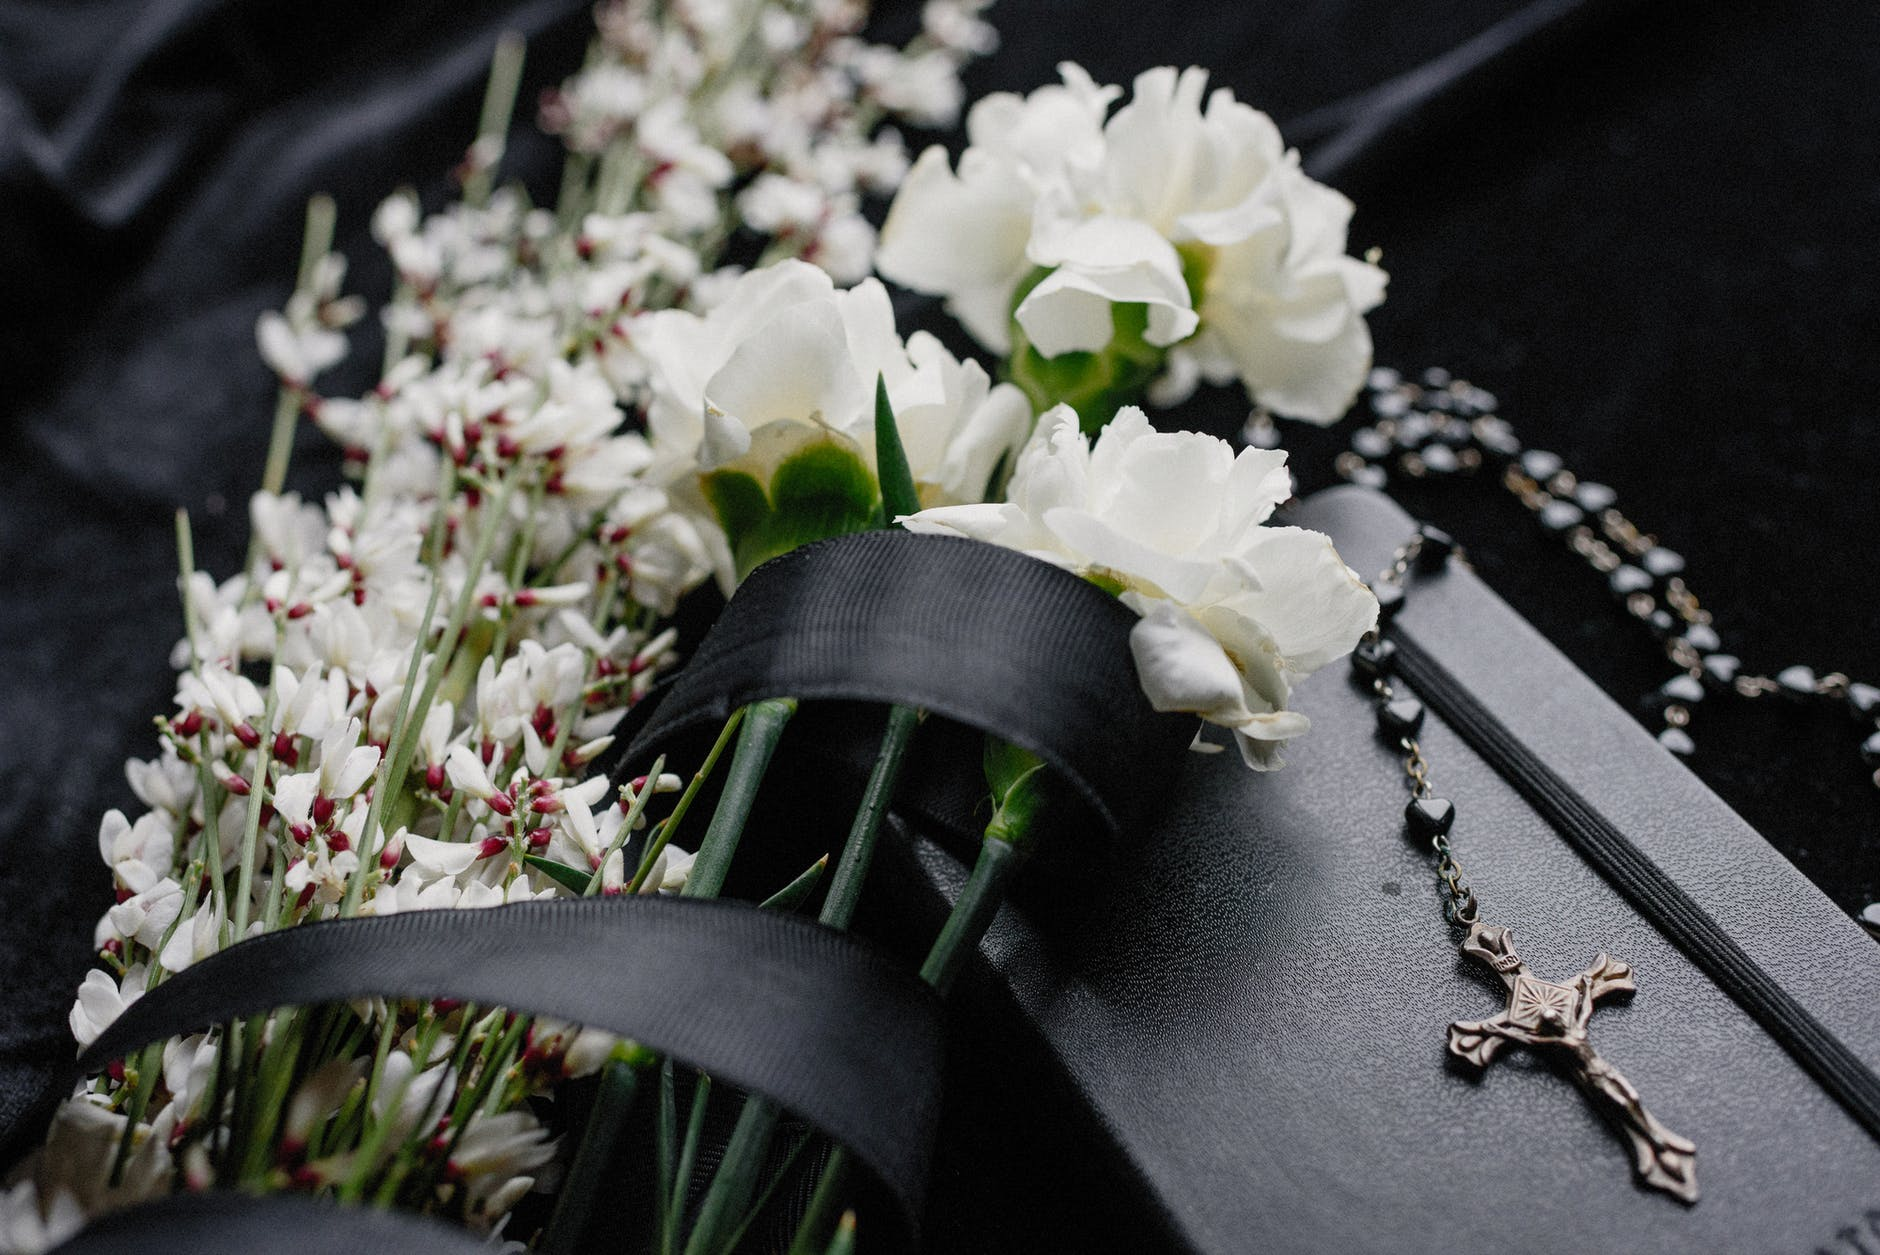 Funeral Services In Sydney